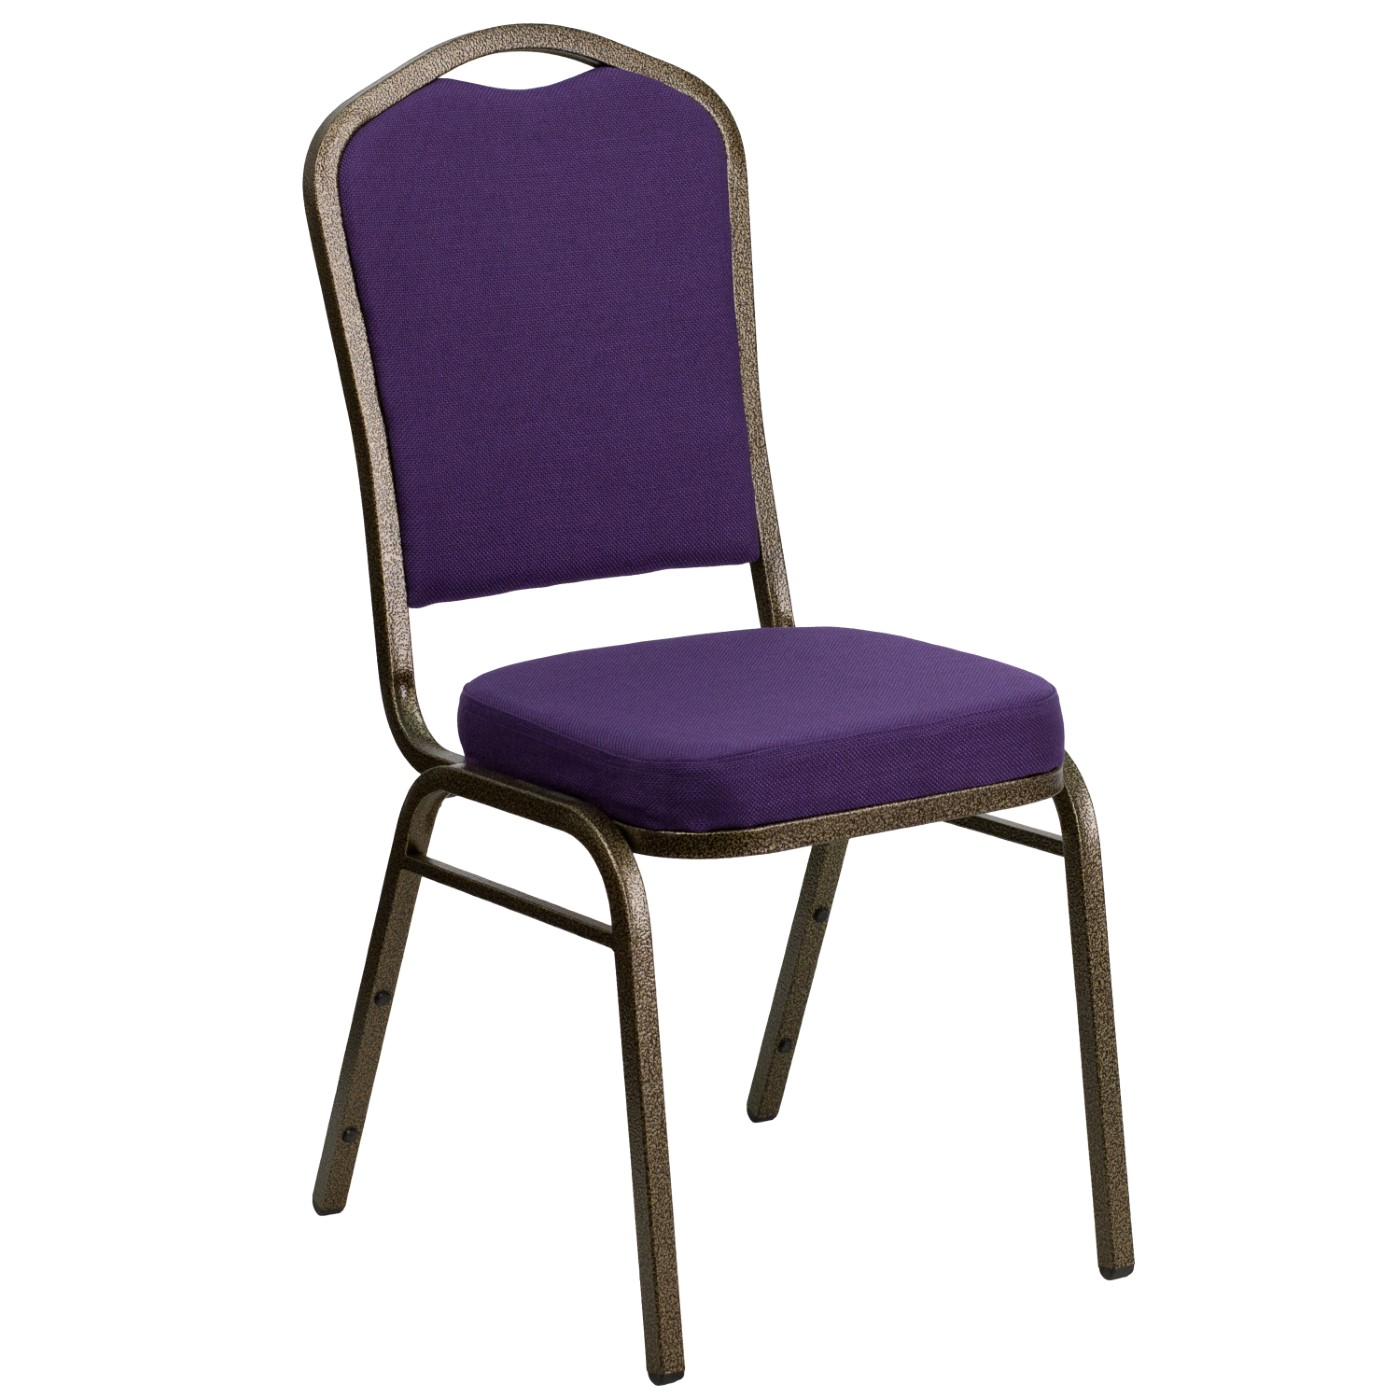 TOUGH ENOUGH Series Crown Back Stacking Banquet Chair in Purple Fabric - Gold Vein Frame